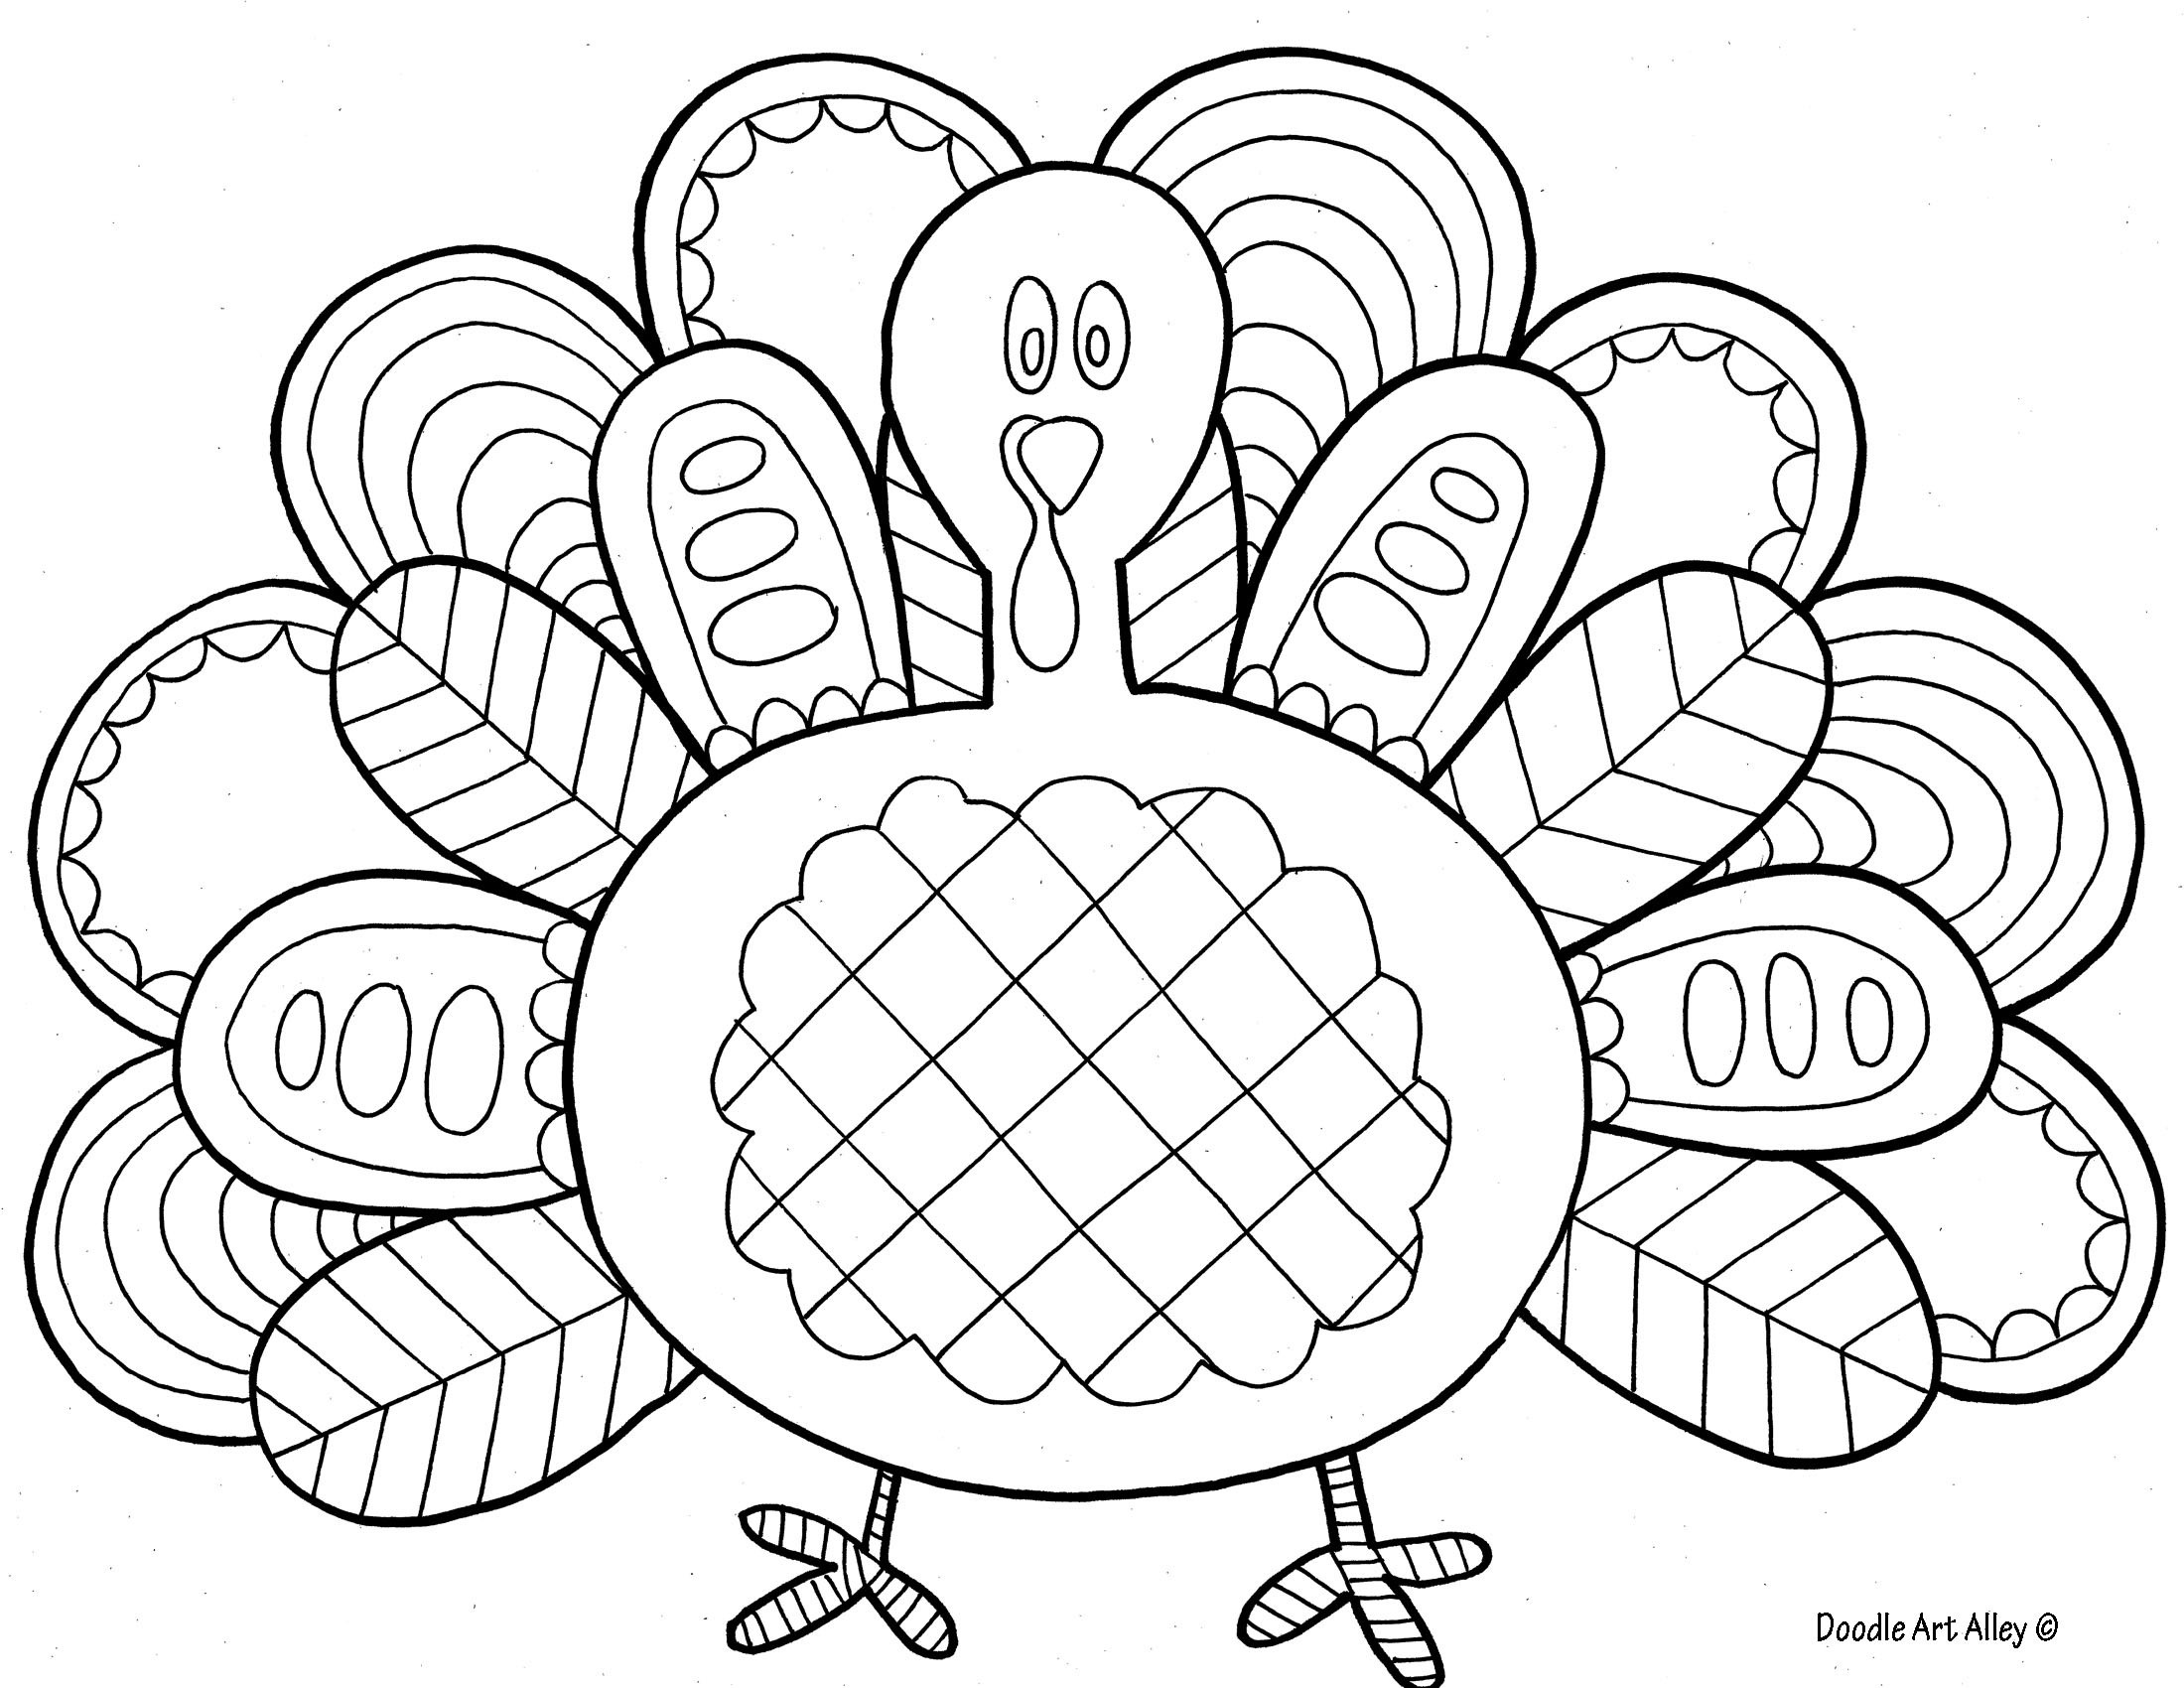 Free Printable Thanksgiving Coloring Placemats – Happy Easter - Free Printable Thanksgiving Coloring Placemats